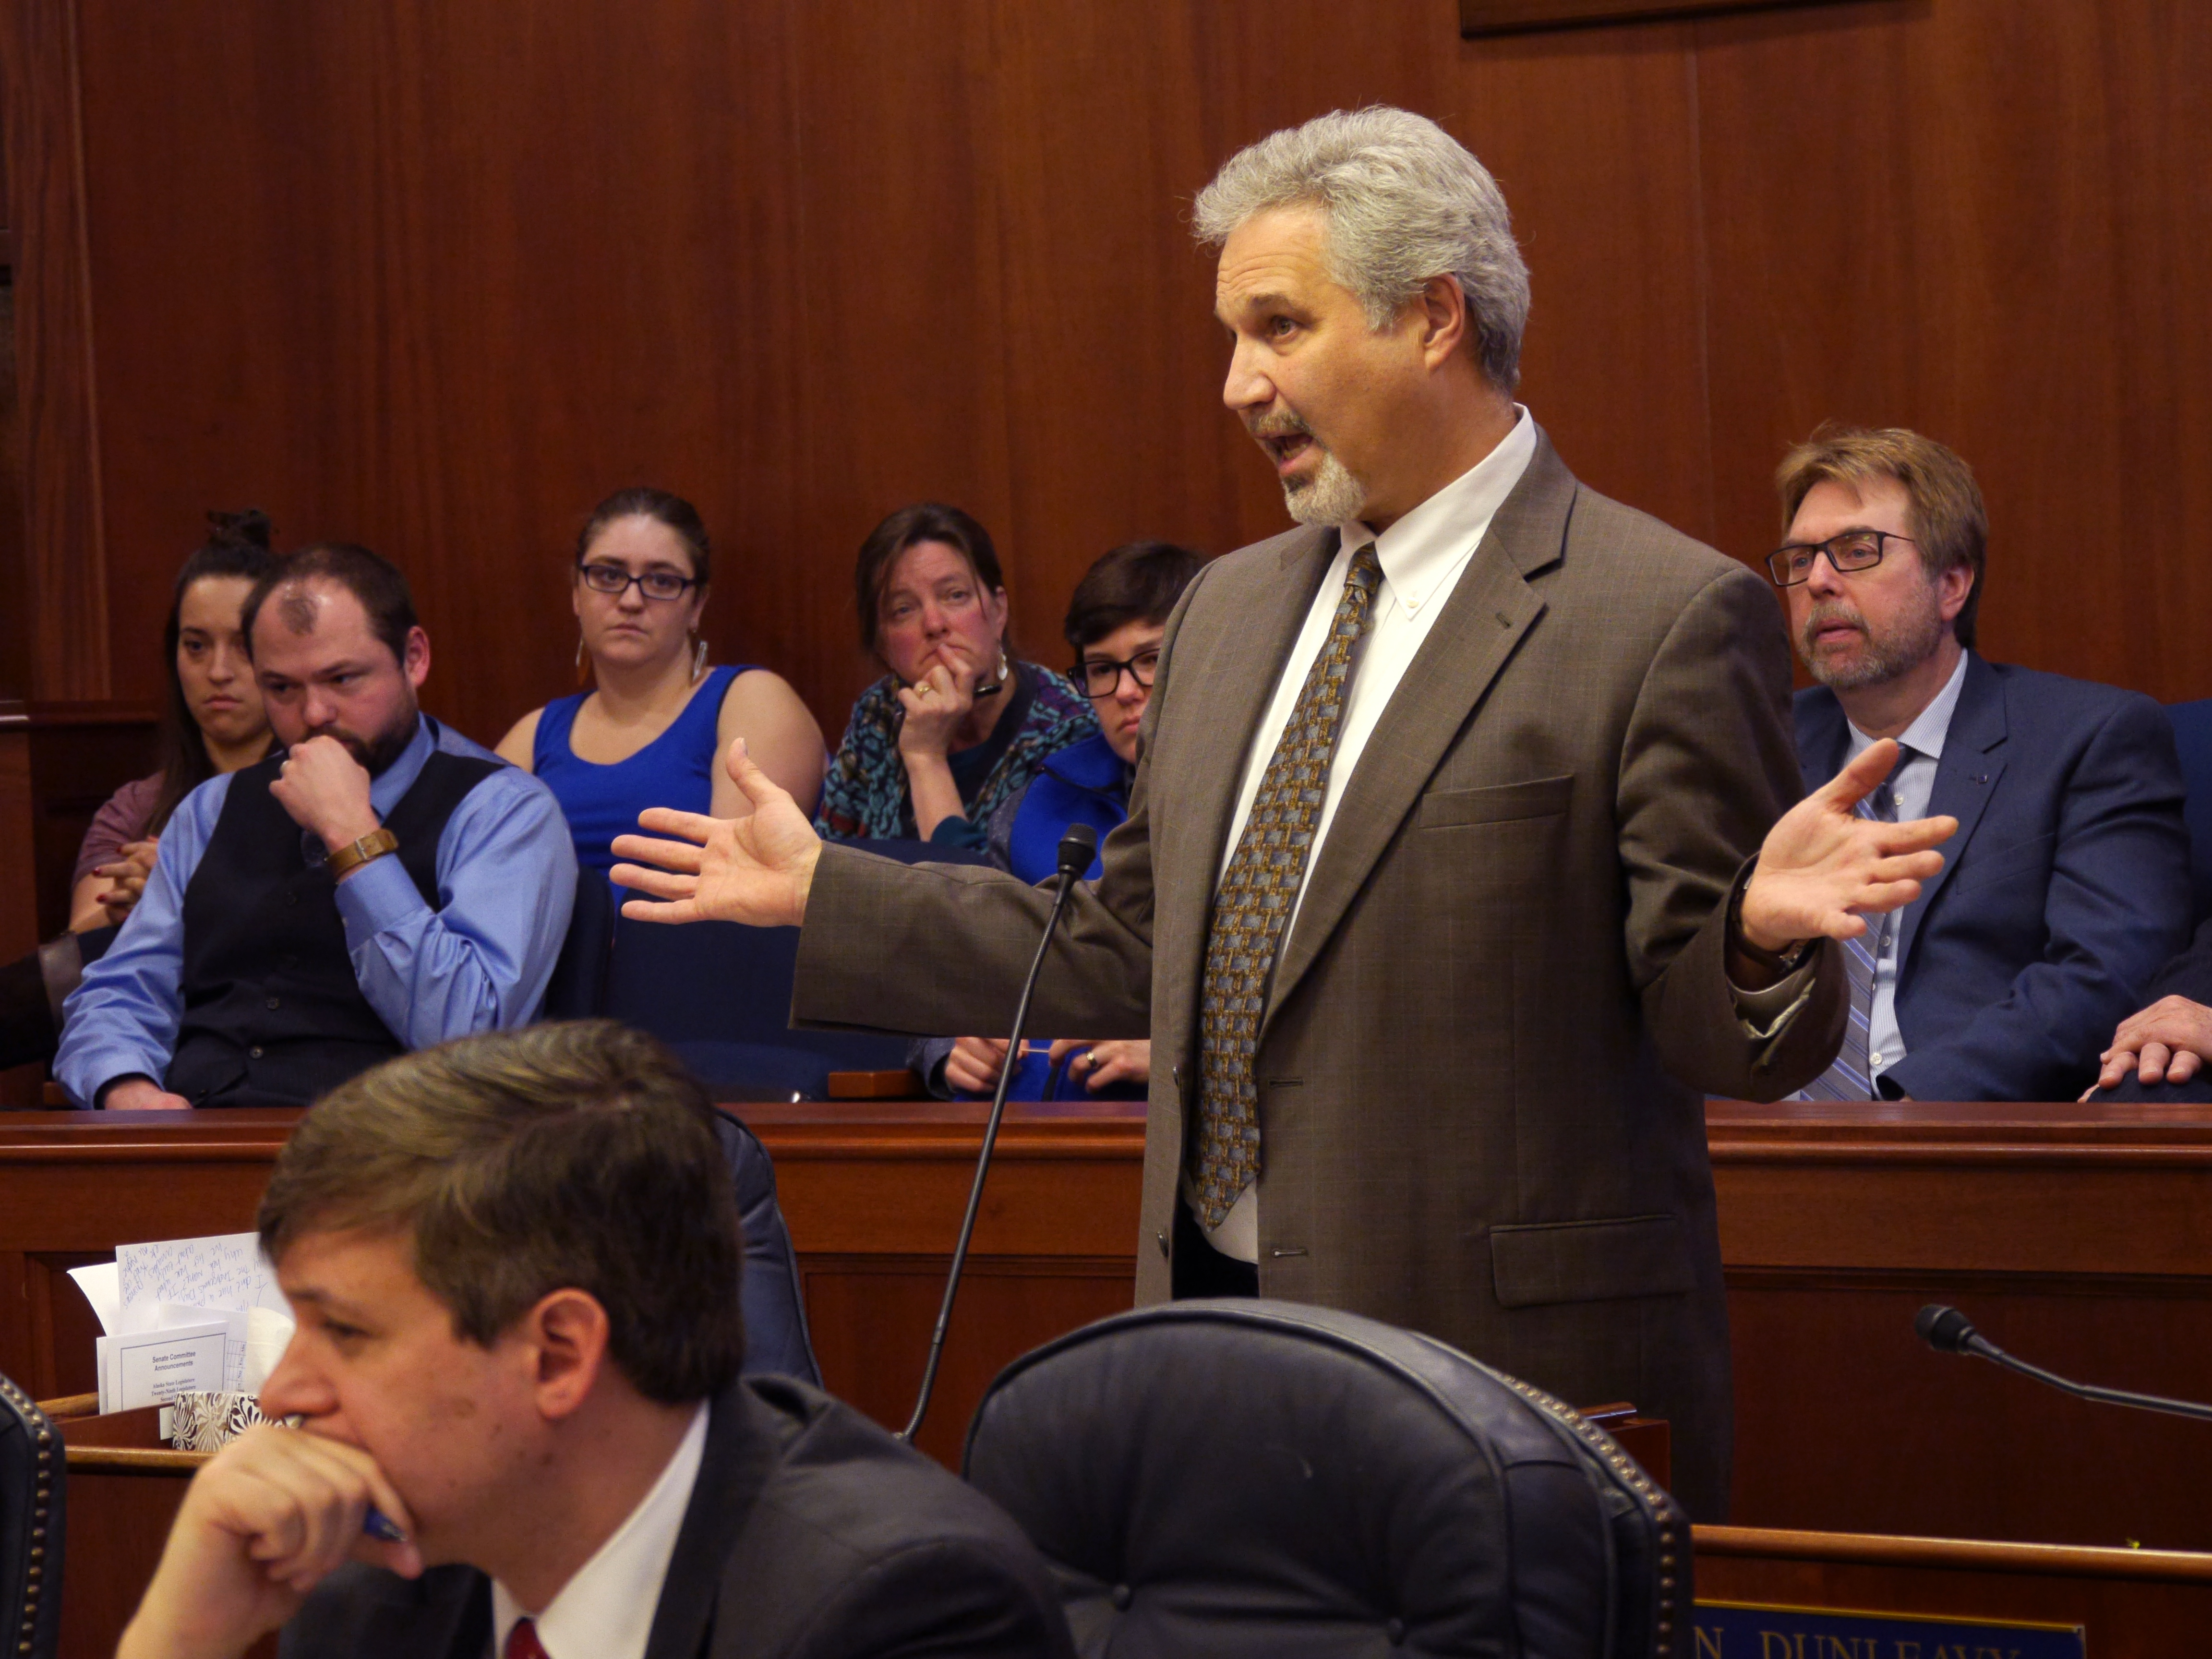 Sen. Pete Kelly, R-Fairbanks, debating the merits of his Senate Bill 174, April 7, 2016. The billl would deny the University of Alaska the authority to regulate the possession of guns and knives on campuses. (Photo by Skip Gray/360 North)